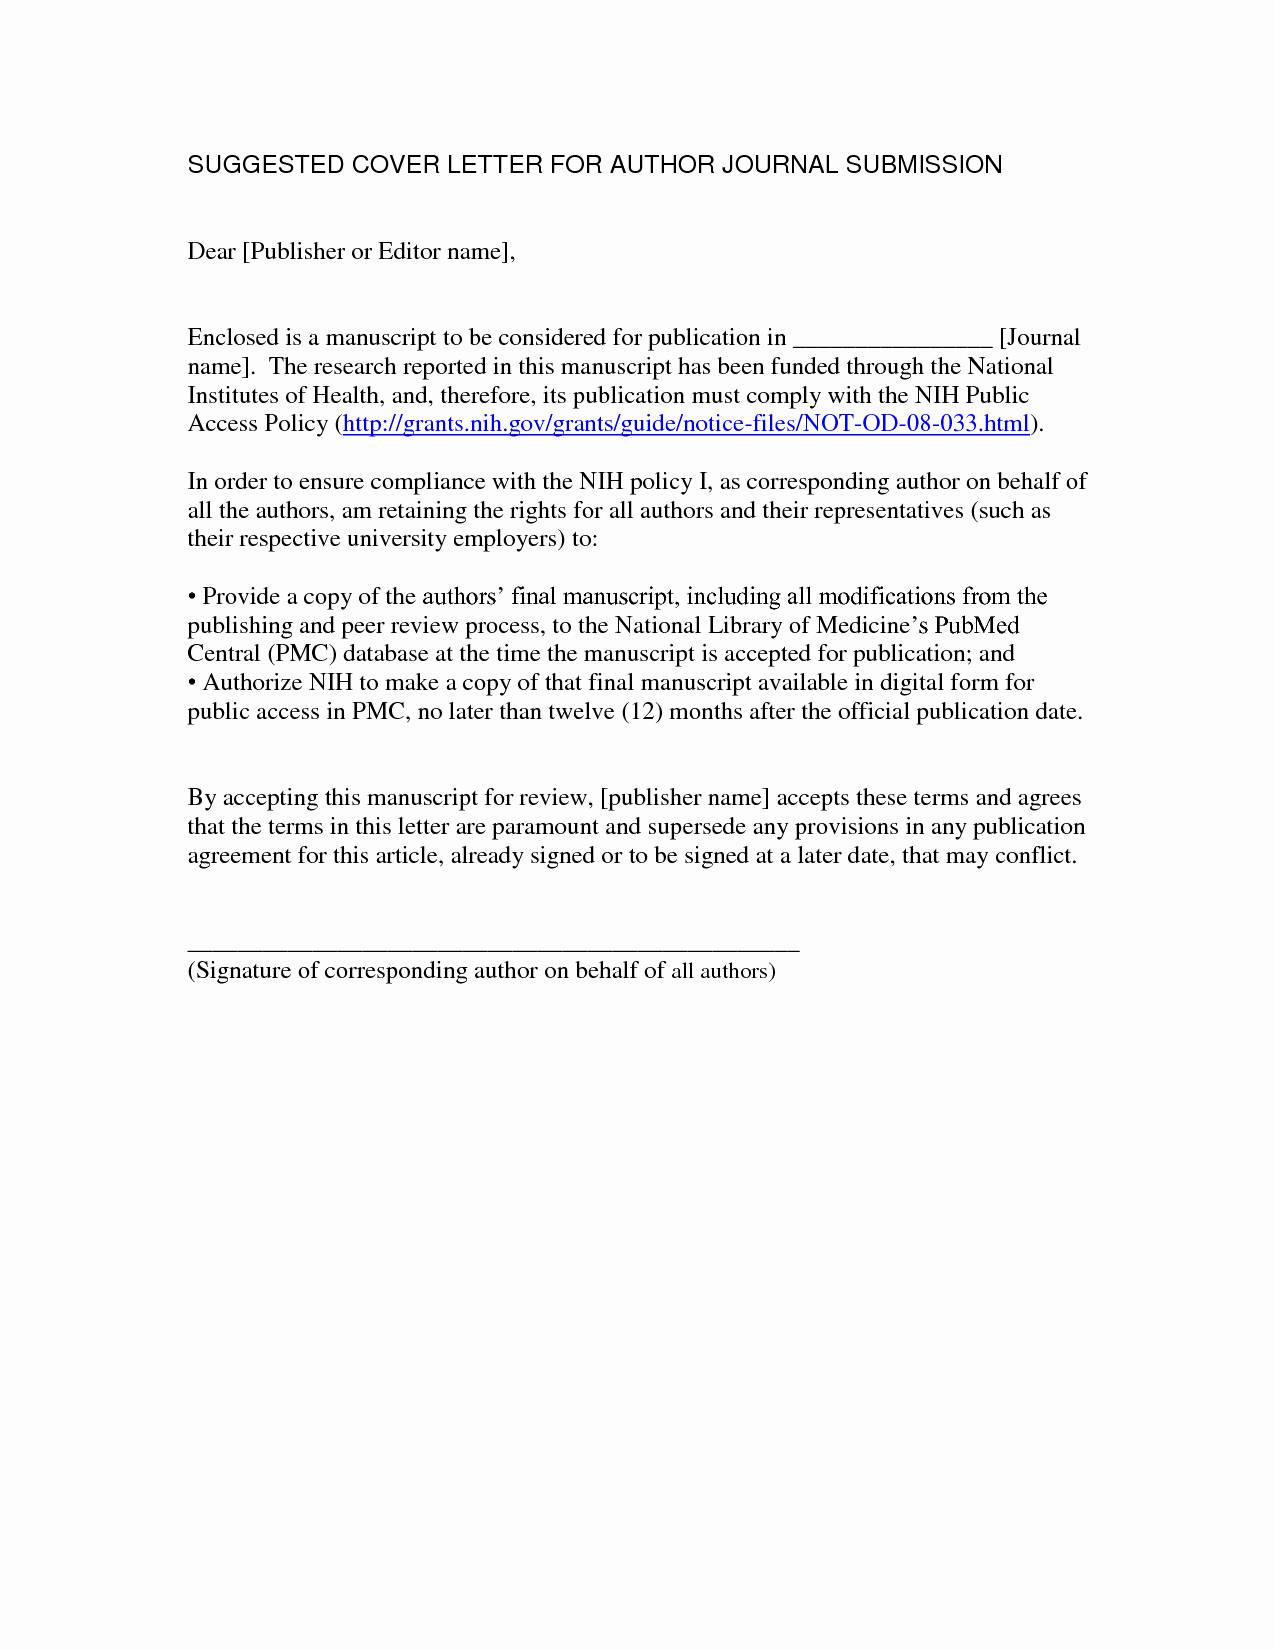 Manuscript Cover Letter Template - Ms Access Templates 2013 Beautiful Cover Letter Templates Free